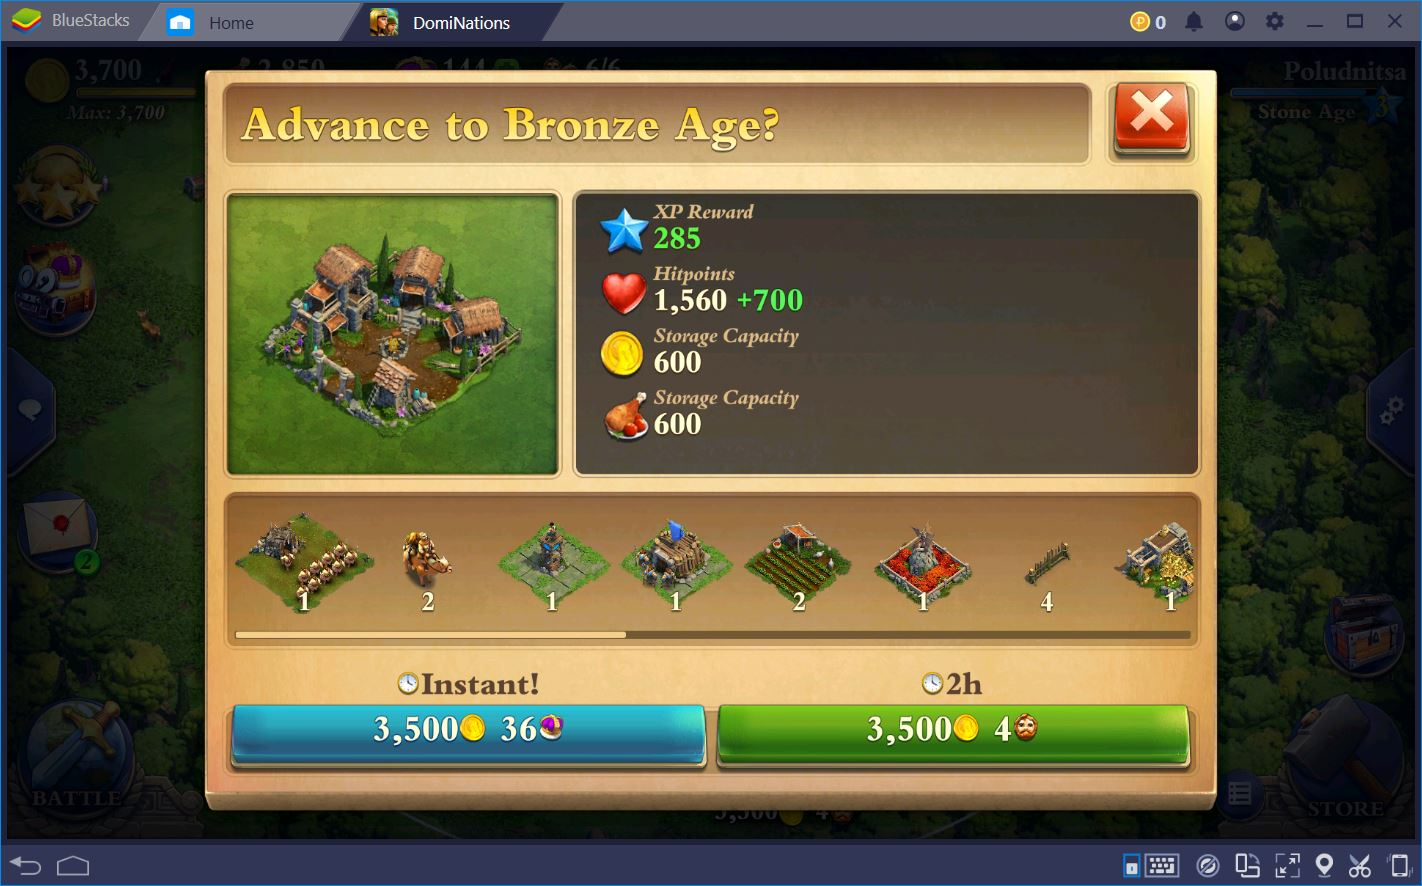 DomiNations: A Guide to the Early Ages